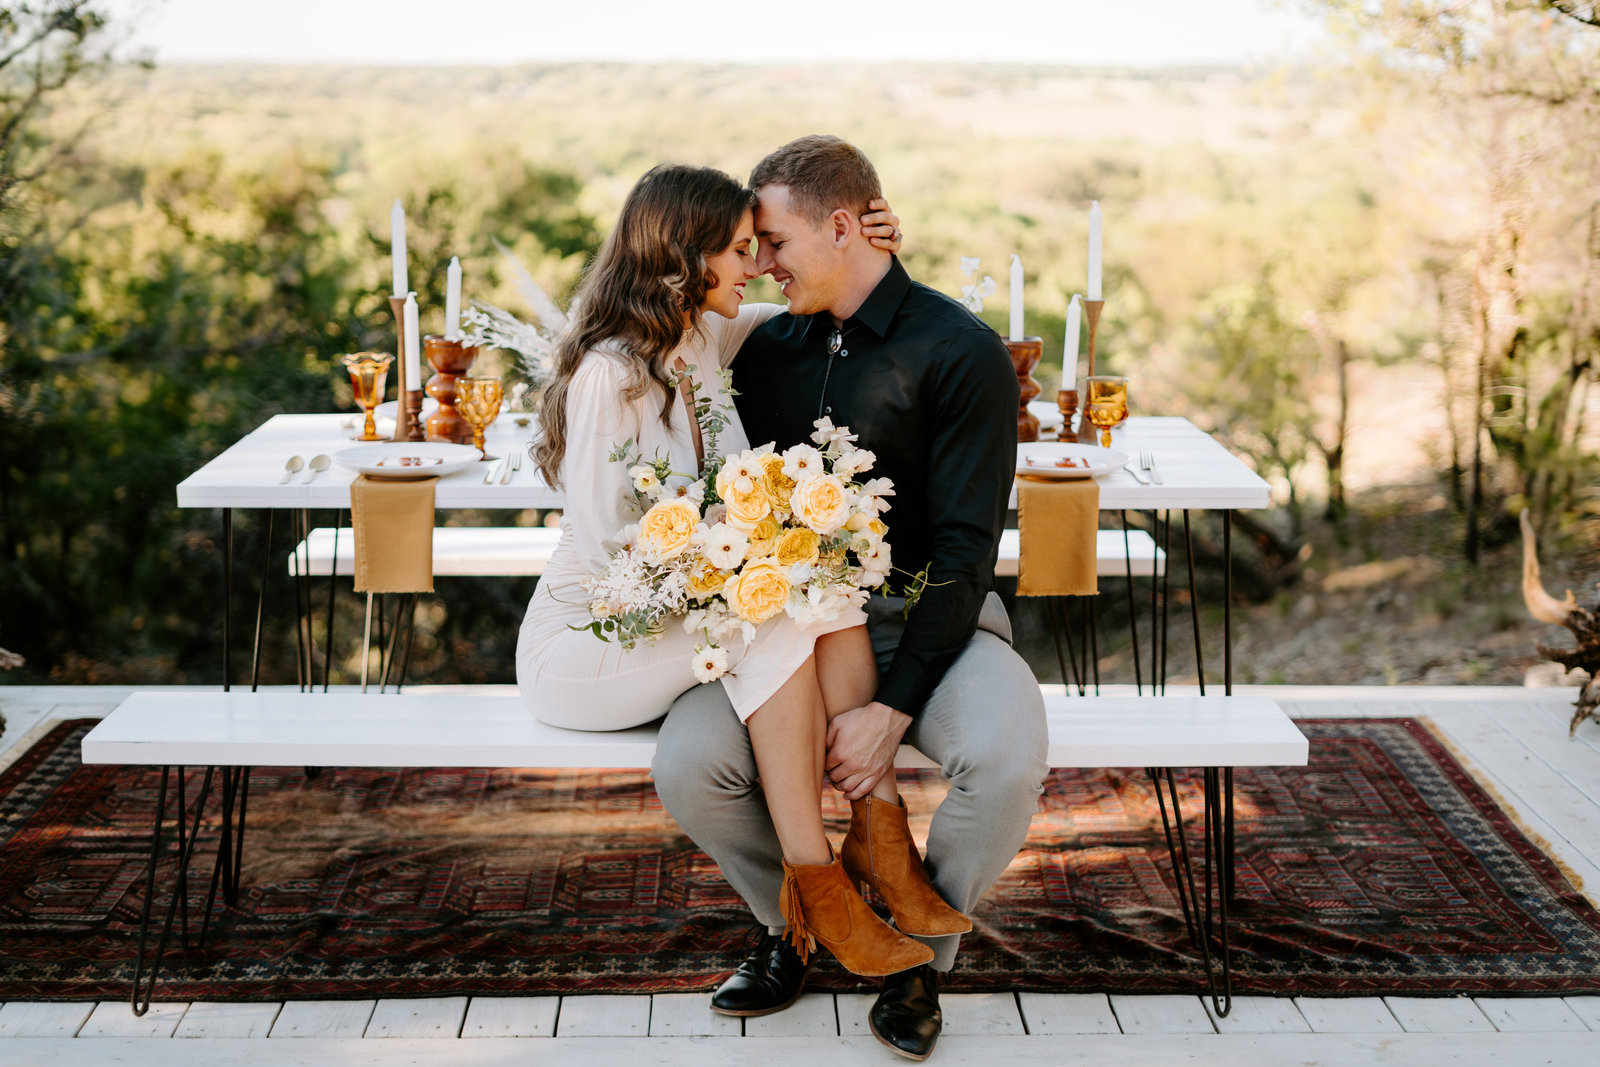 lucky-arrow-retreat-elopement-austin-texas-destination-wedding-photographer-sydney-and-ryan-photography-1 copy